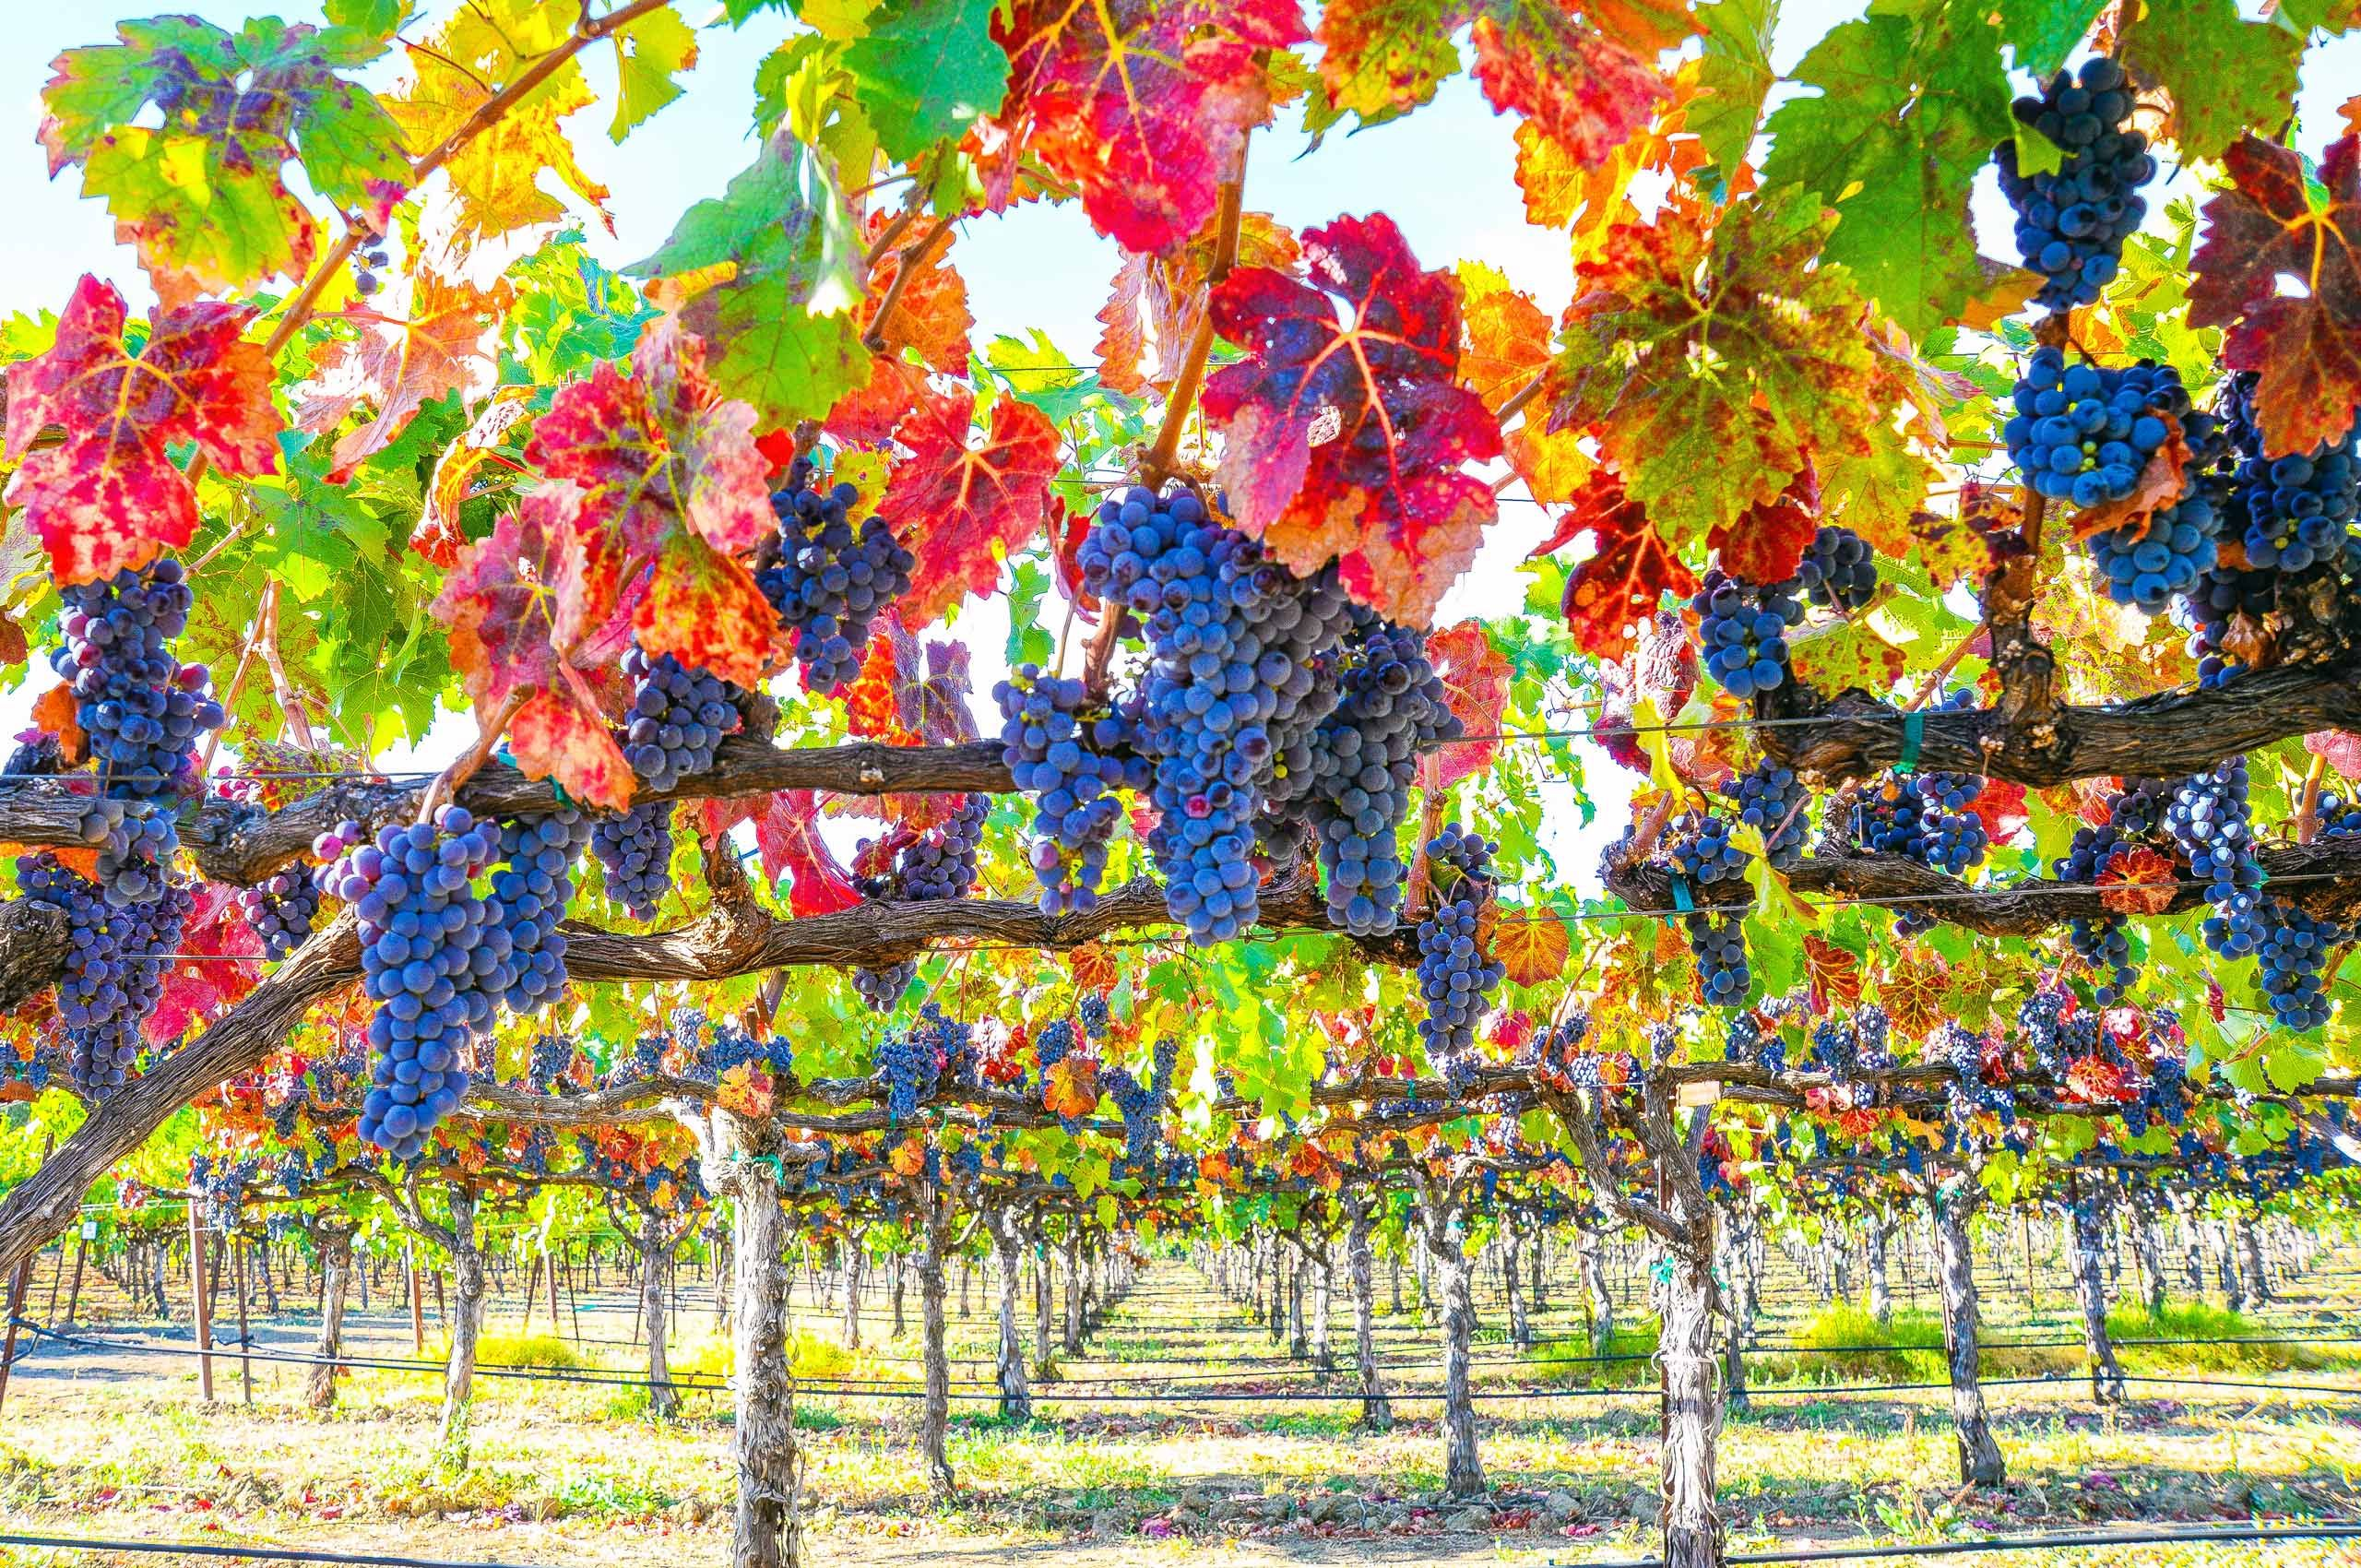 Grapes on Vines_Napa Valley